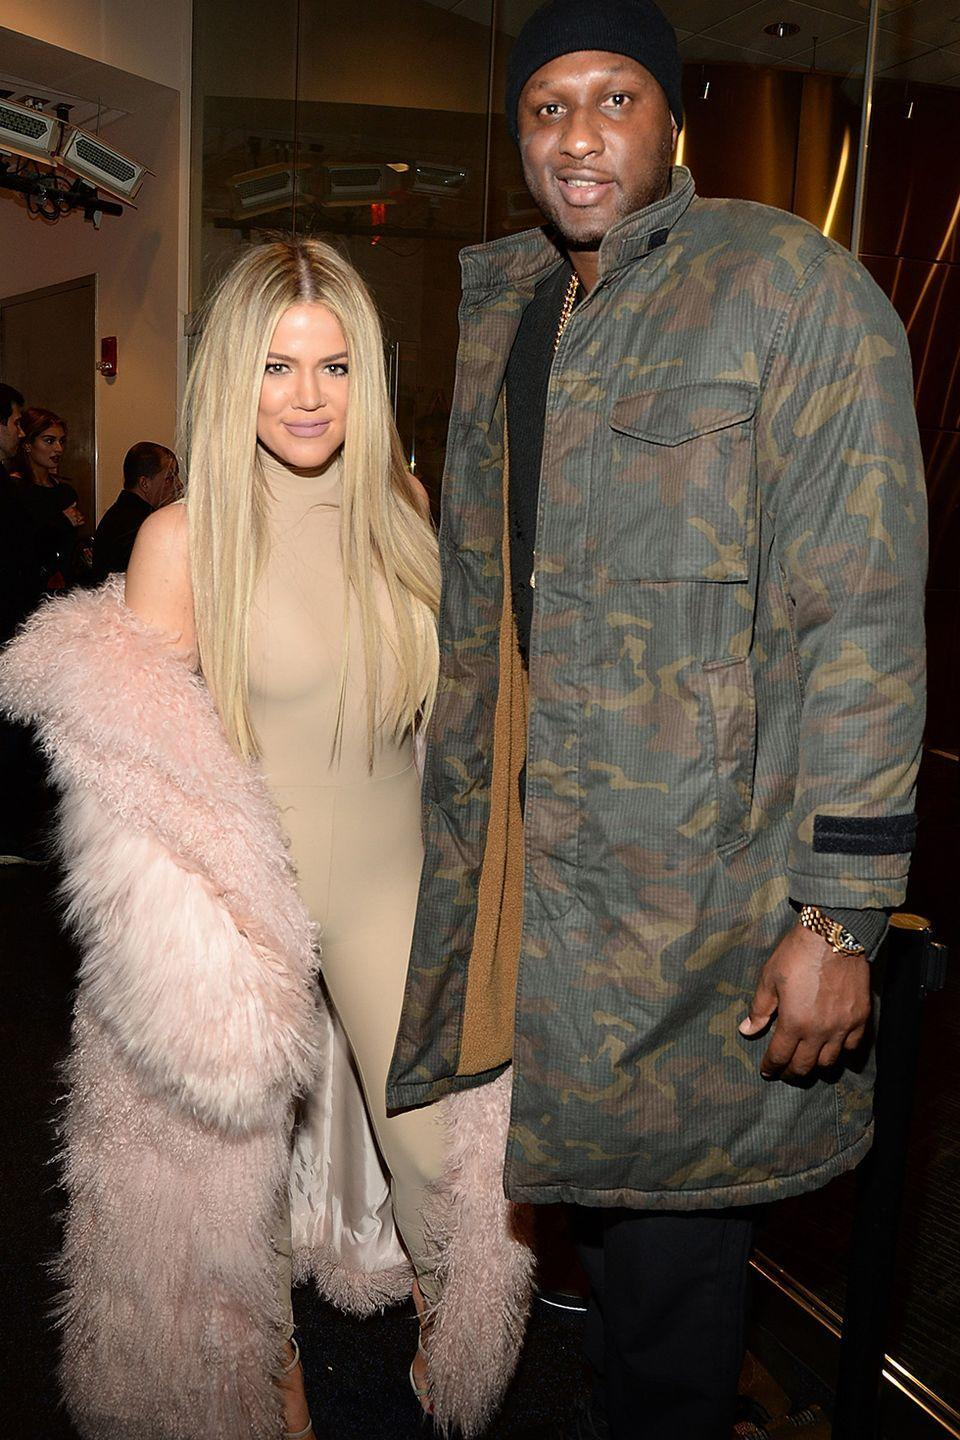 "<p>Back in 2009, they met, got engaged, and were married all in the span of a month, according to <em><a href=""https://www.etonline.com/news/174085_lamar_odom_and_khloe_kardashian_a_timeline_of_their_relationship"" rel=""nofollow noopener"" target=""_blank"" data-ylk=""slk:ET"" class=""link rapid-noclick-resp"">ET</a></em>. We all know how that one turned out. (Spoiler: a very public divorce.)</p>"